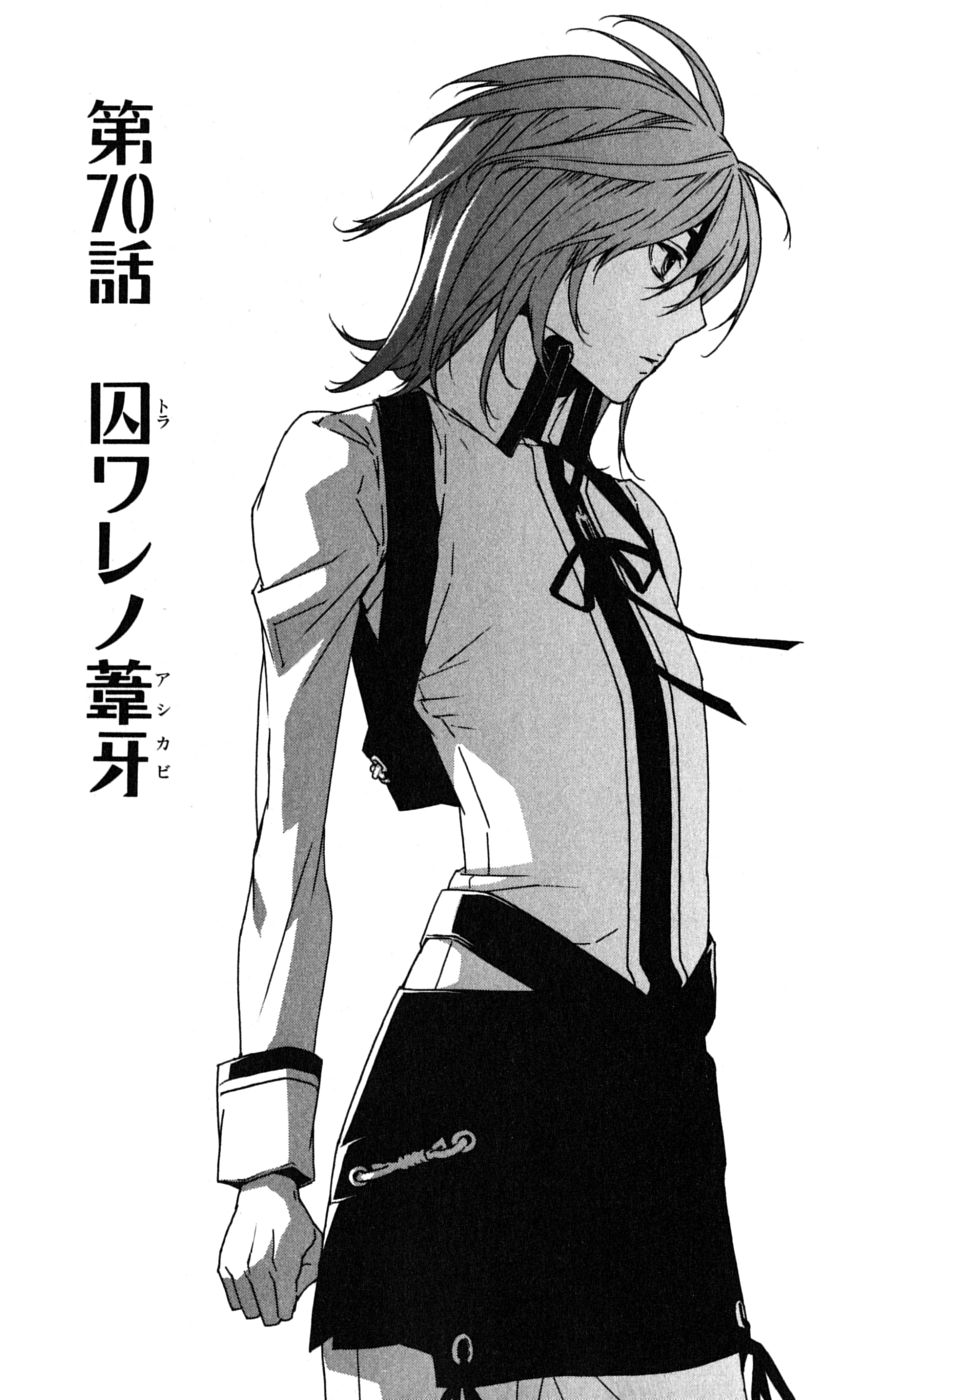 Sekirei manga chapter 070 jpg